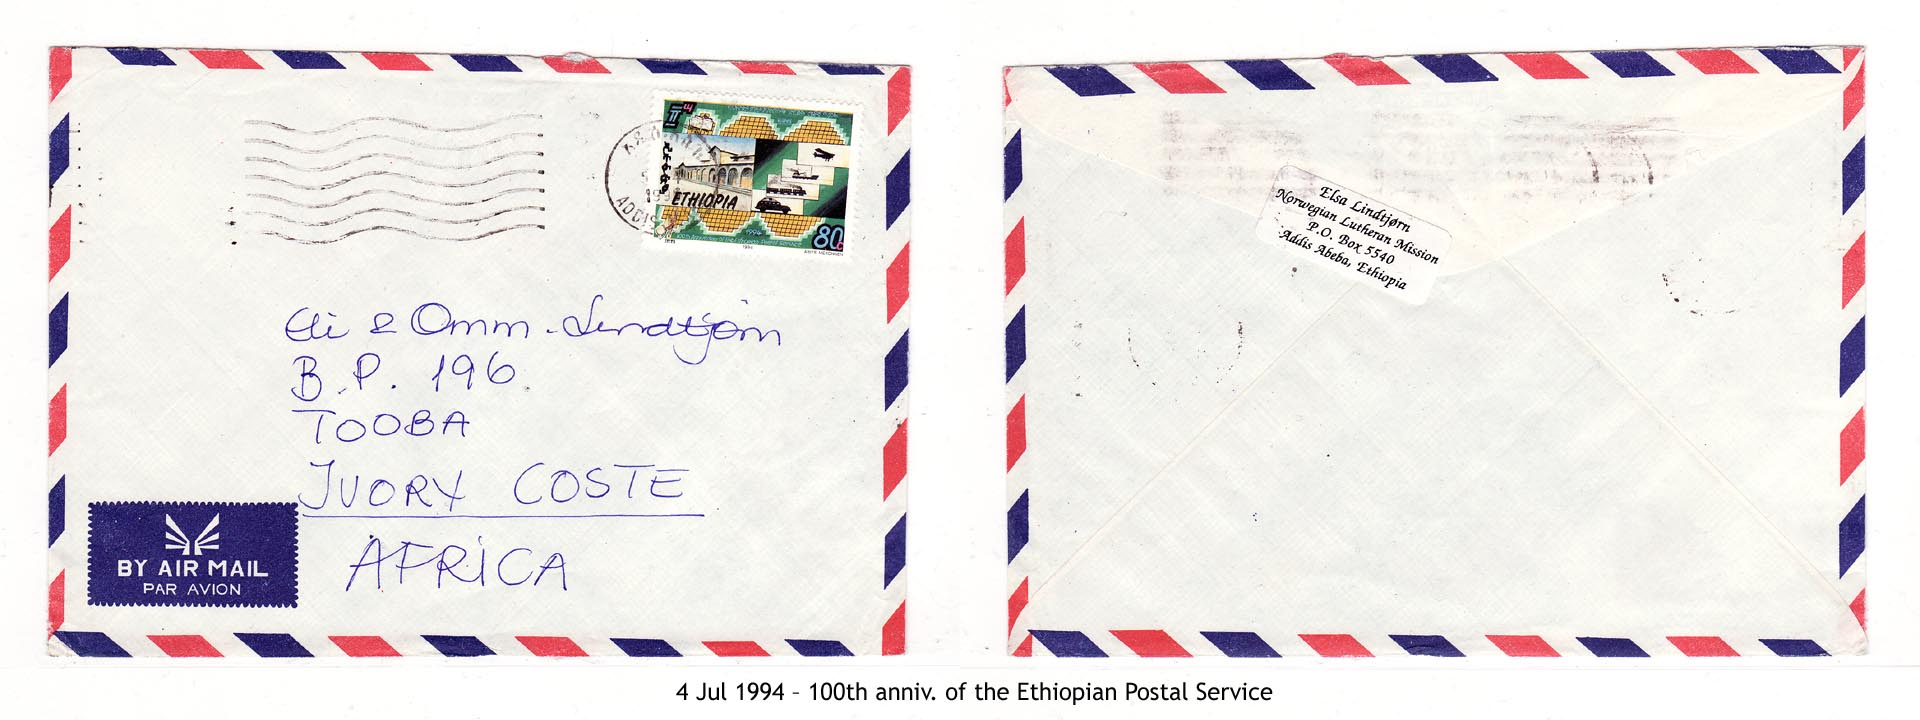 19940704 – 100th anniv. of the Ethiopian Postal Service